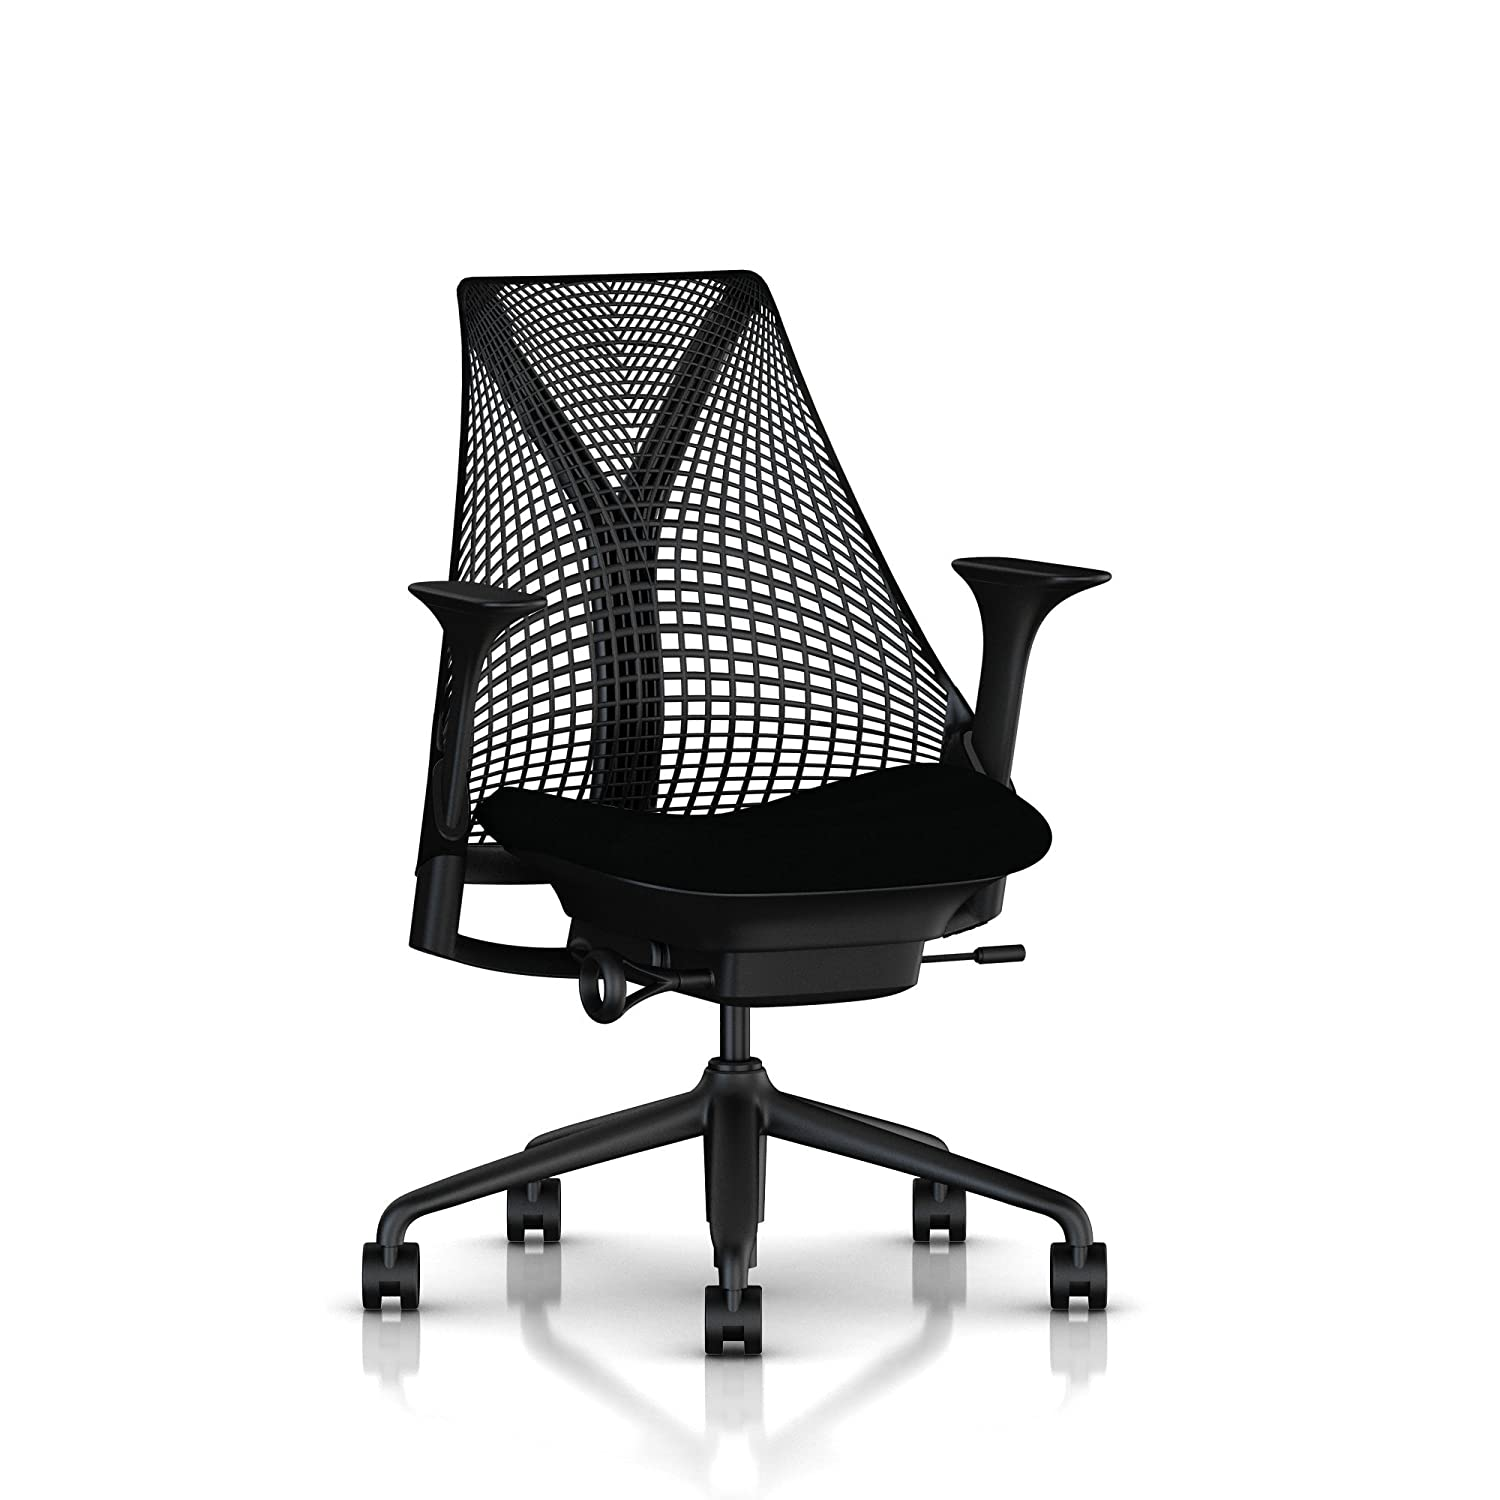 Herman Miller Sayl Chair Black Friday Deals 2020